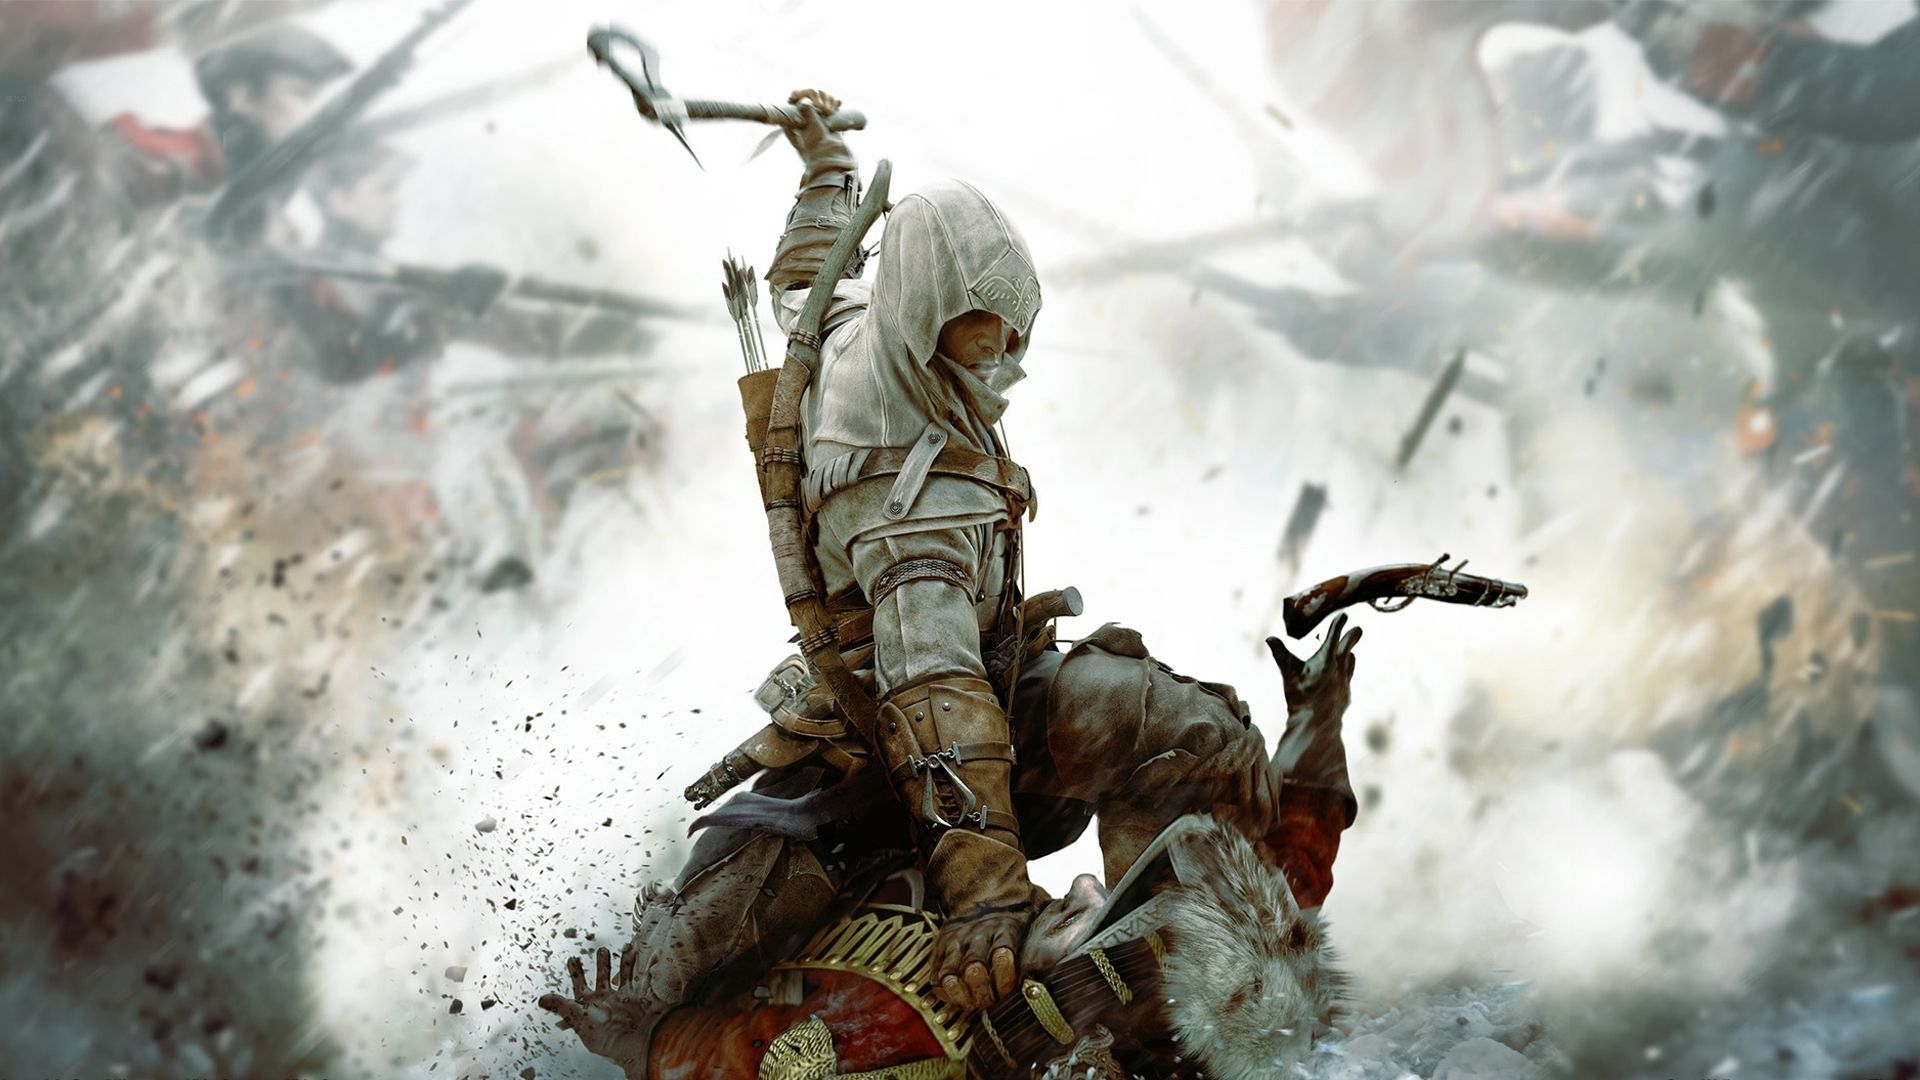 10 New Assassin S Creed Wallpaper 1366x768 Full Hd 1080p For Pc